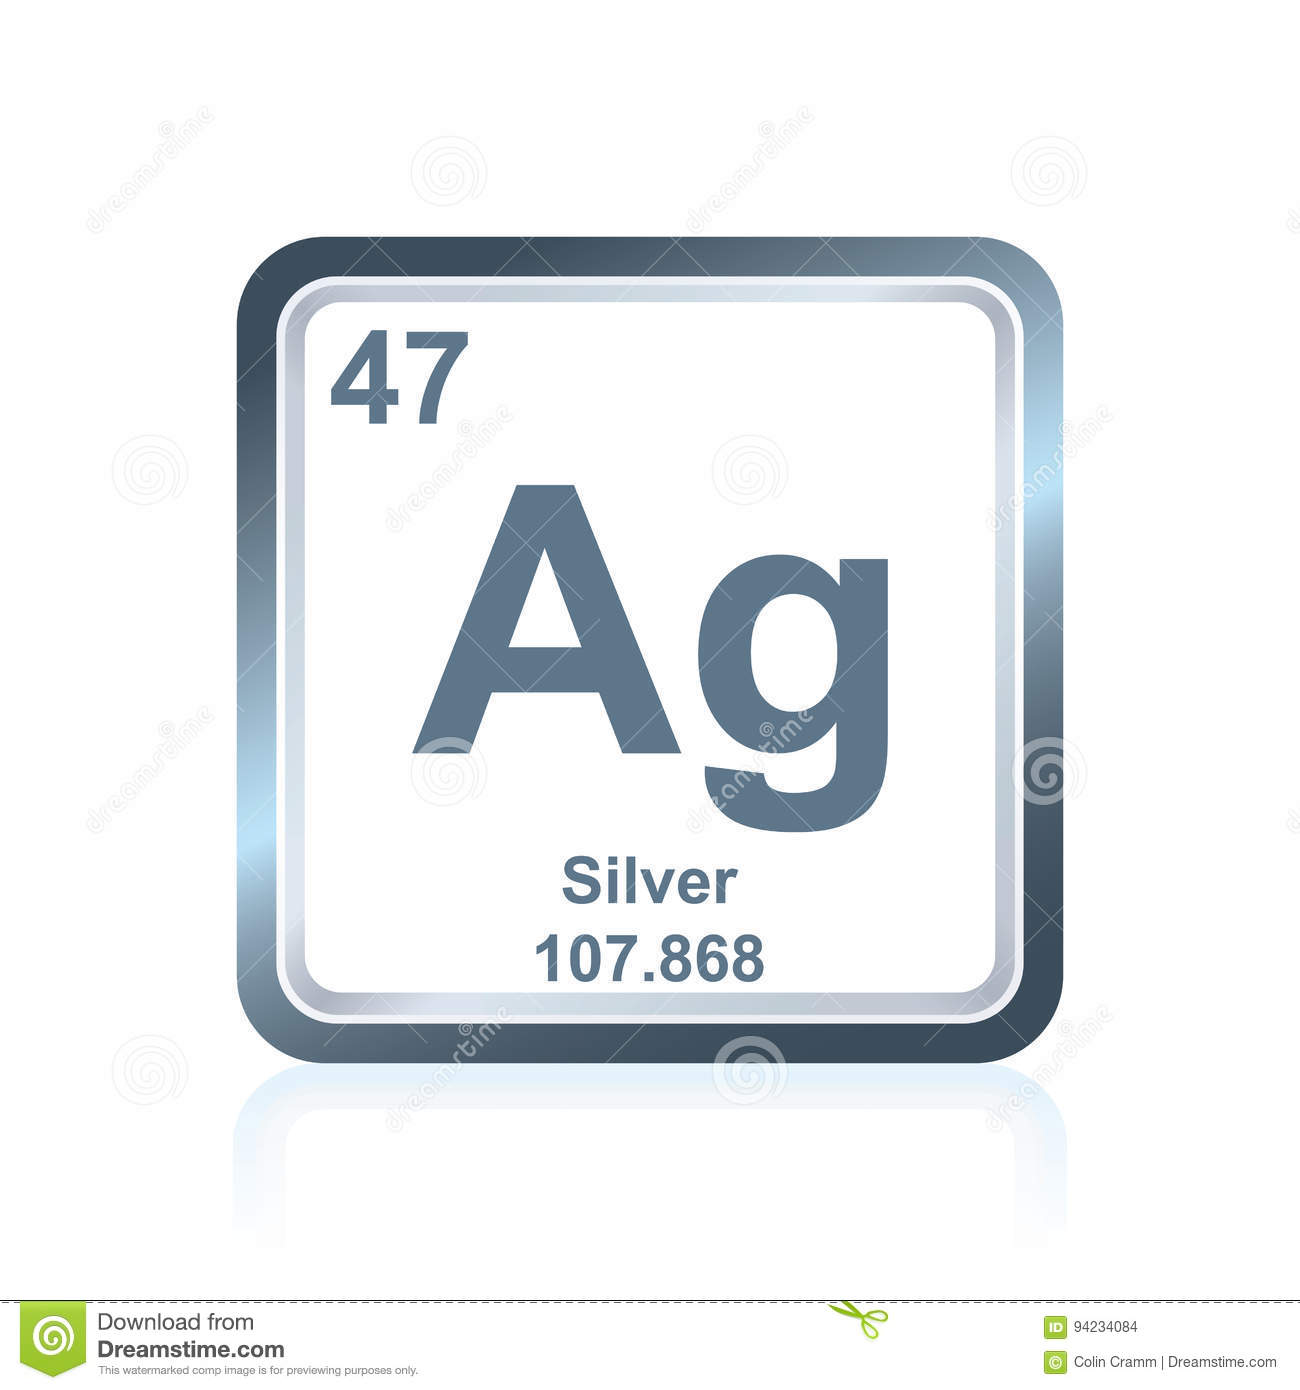 Chemical element silver from the periodic table stock illustration download chemical element silver from the periodic table stock illustration illustration of number atomic urtaz Gallery